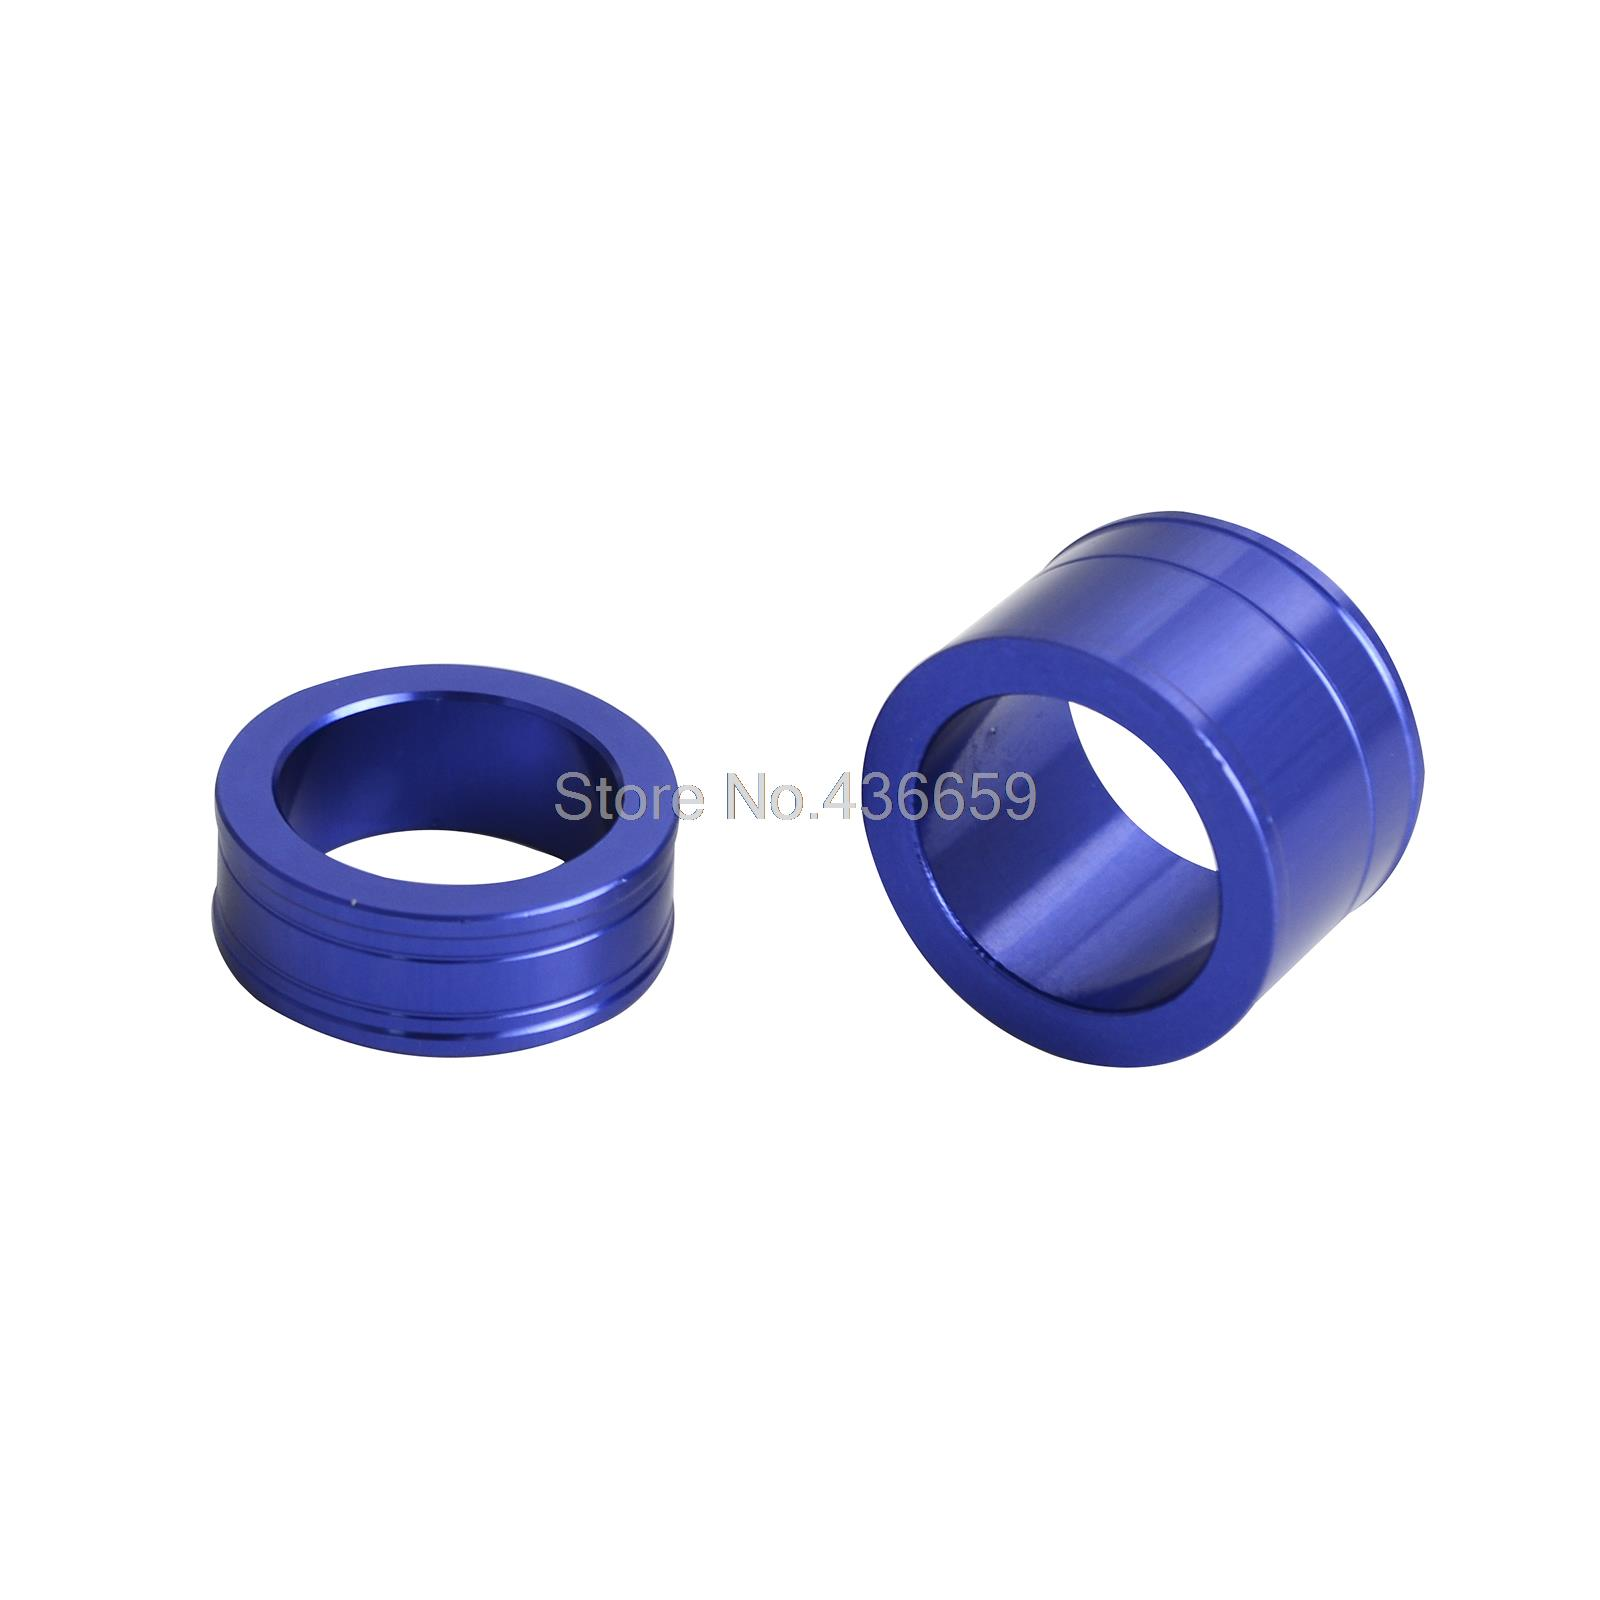 CNC Billet Aluminum Front Wheel Spacer Hub Collar For Yamaha YZ250F YZ450F 2014 2015 2016 2017